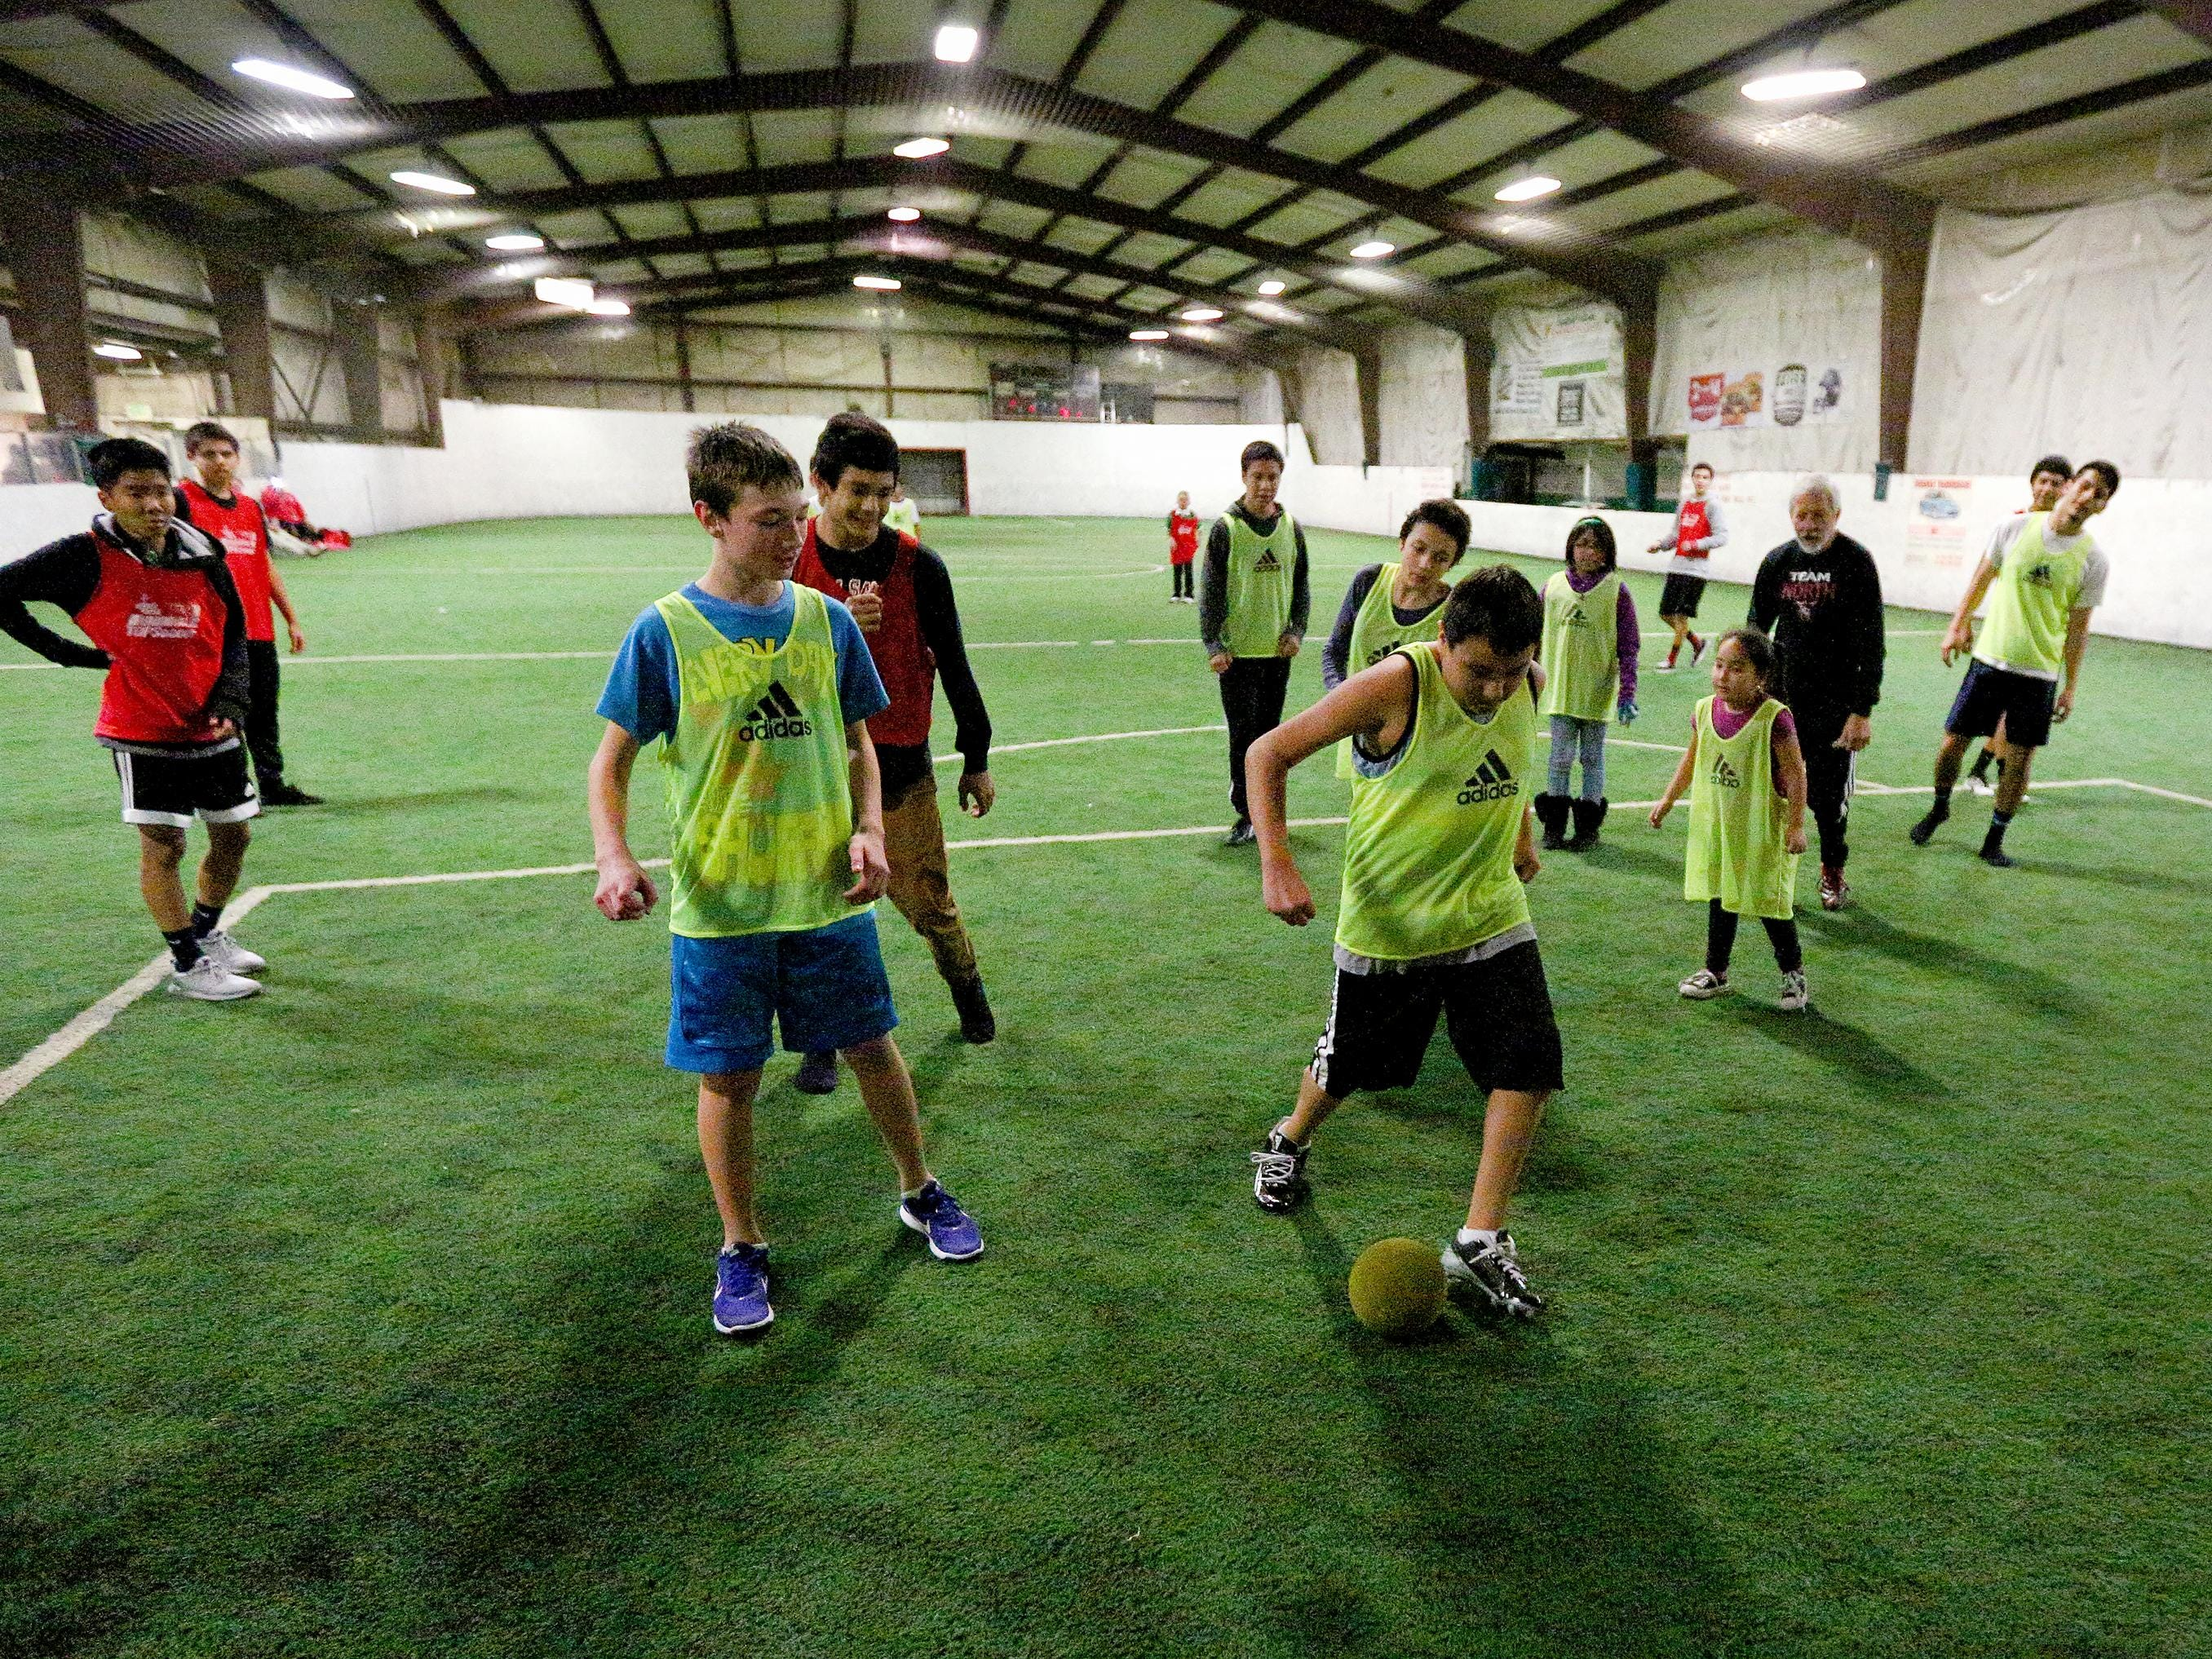 Chris Racine, 13, brings the ball into the box to score a goal during a youth soccer program with North Salem High School's boys soccer team, Wednesday, November 18, 2015, at Salem Indoor Soccer Center in Salem, Ore.